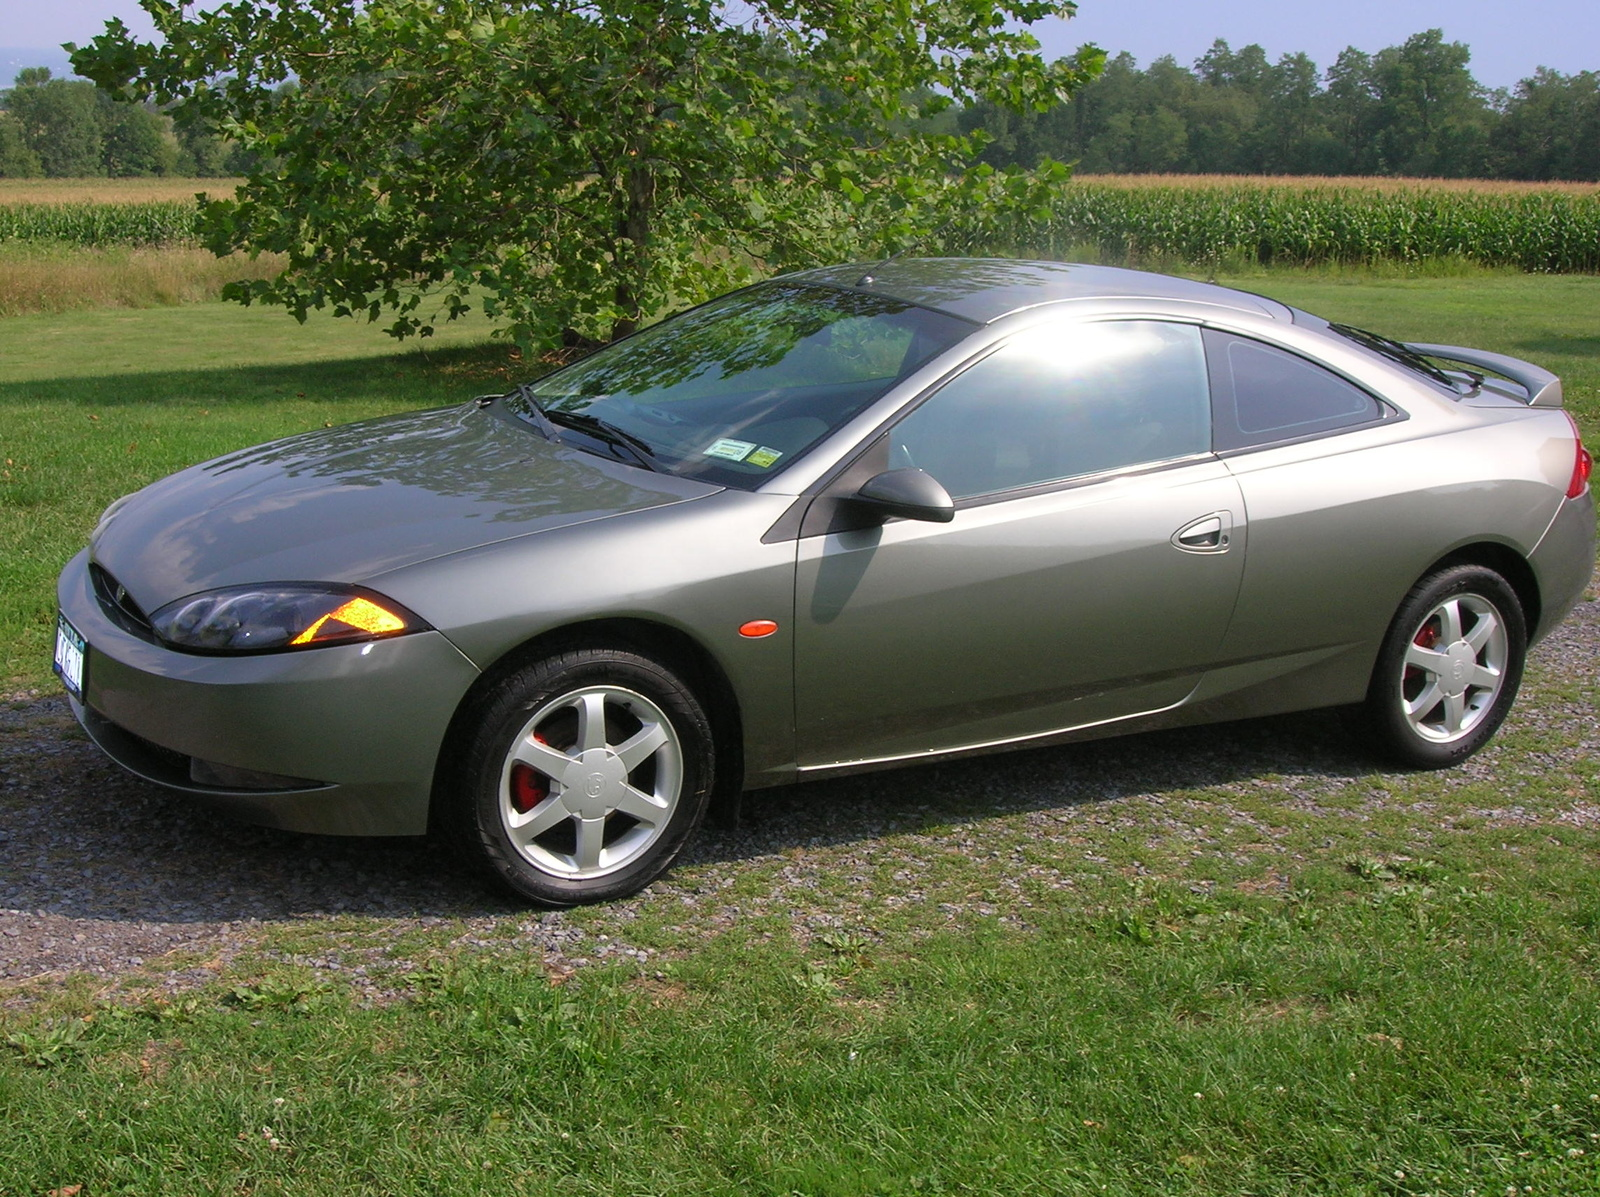 2000 Mercury Cougar 2 Dr V6 Hatchback picture